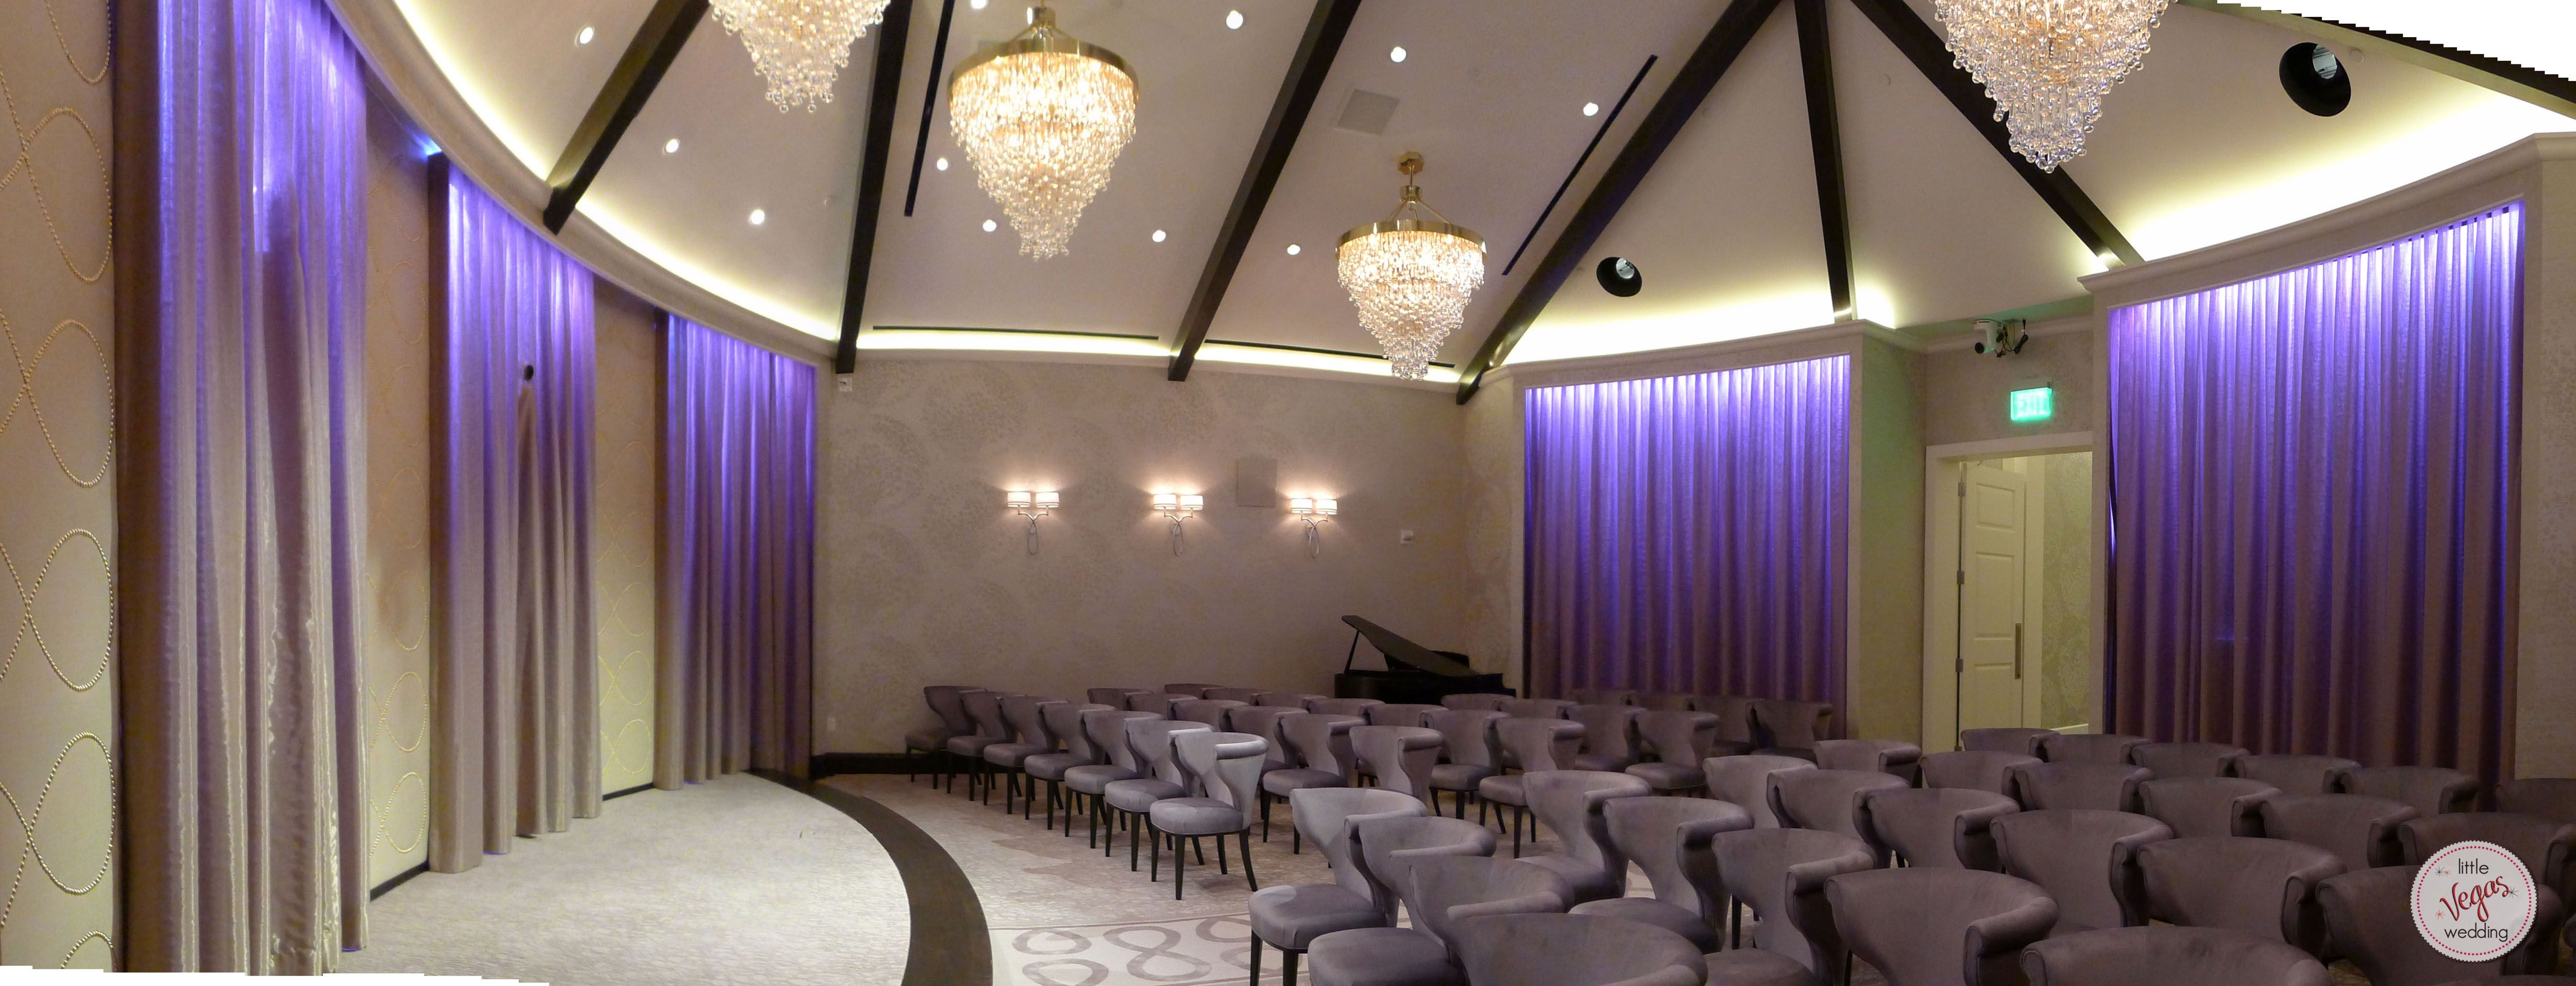 vegas wedding chapels ARIA Las Vegas s Wedding Chapel